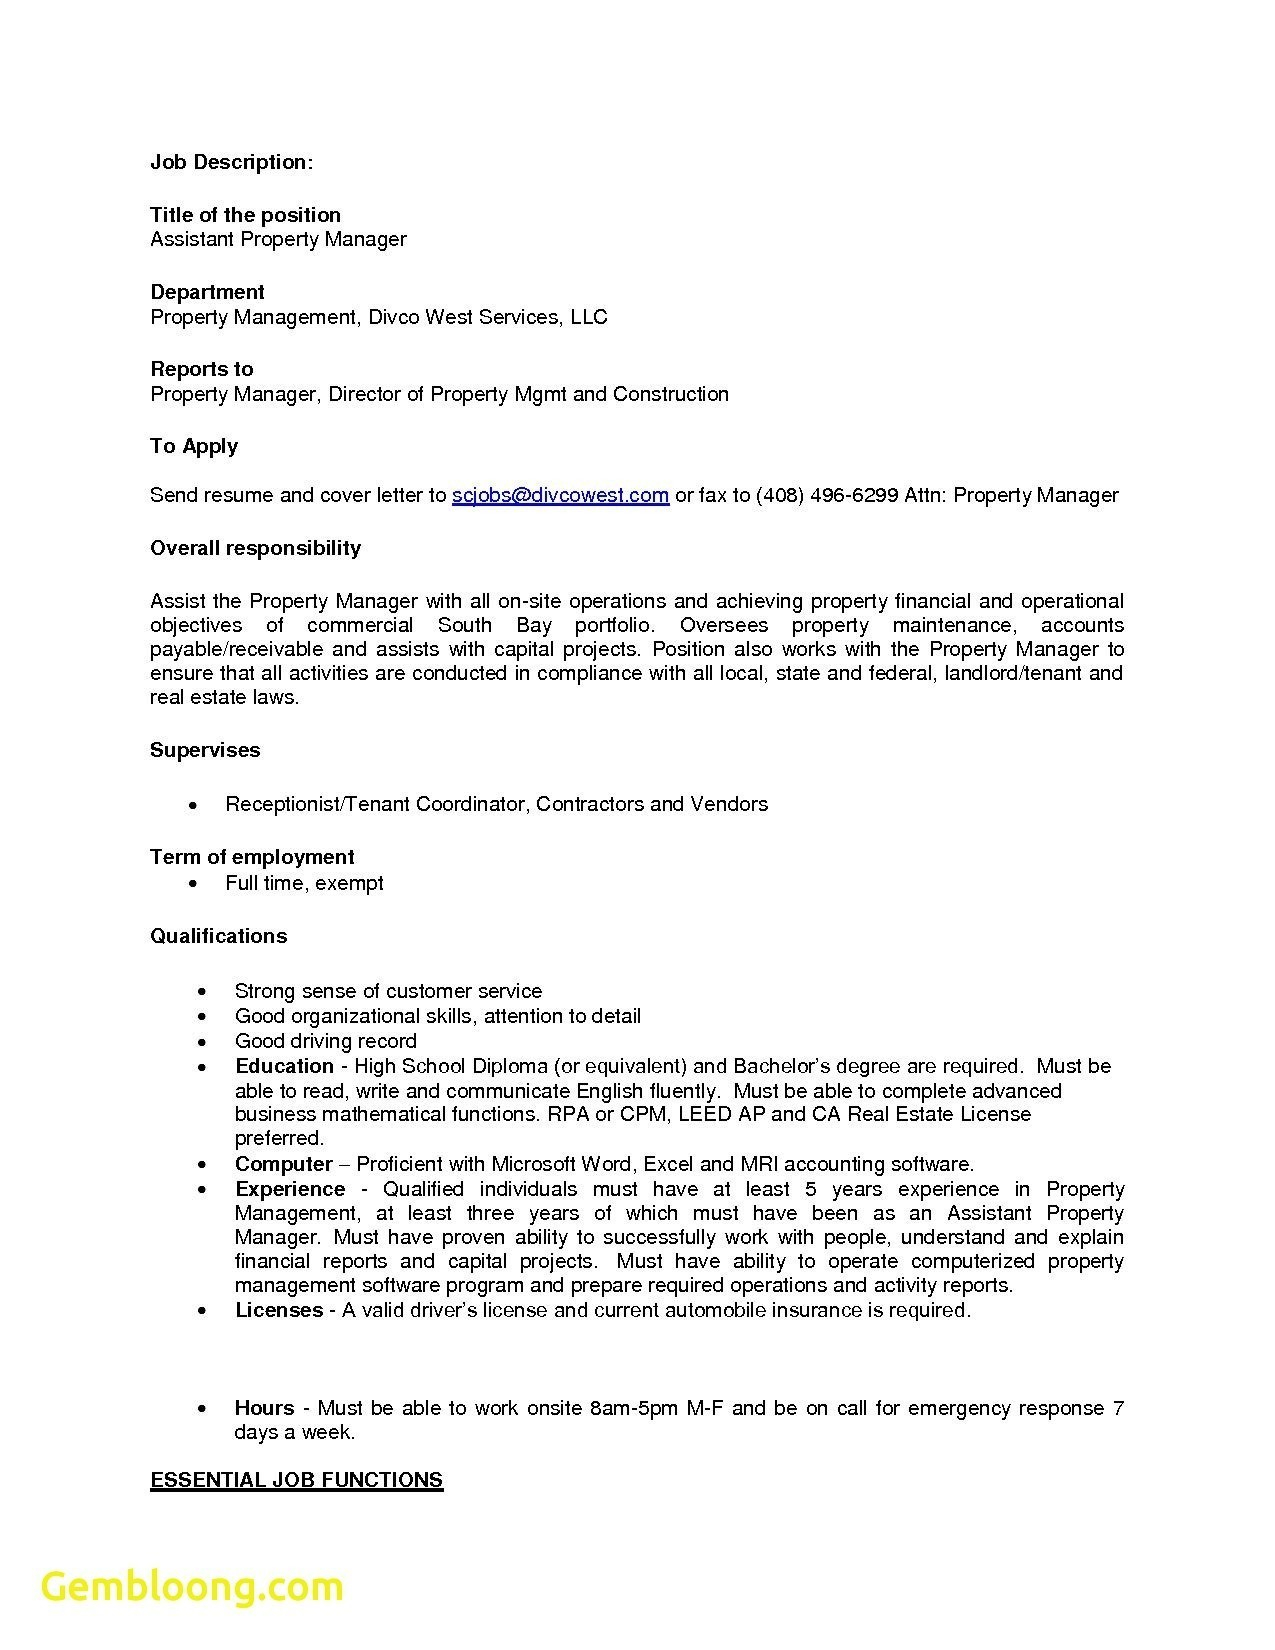 Employment Offer Letter Template Word - format Appointment Letter In Marathi Best Appointment Letter